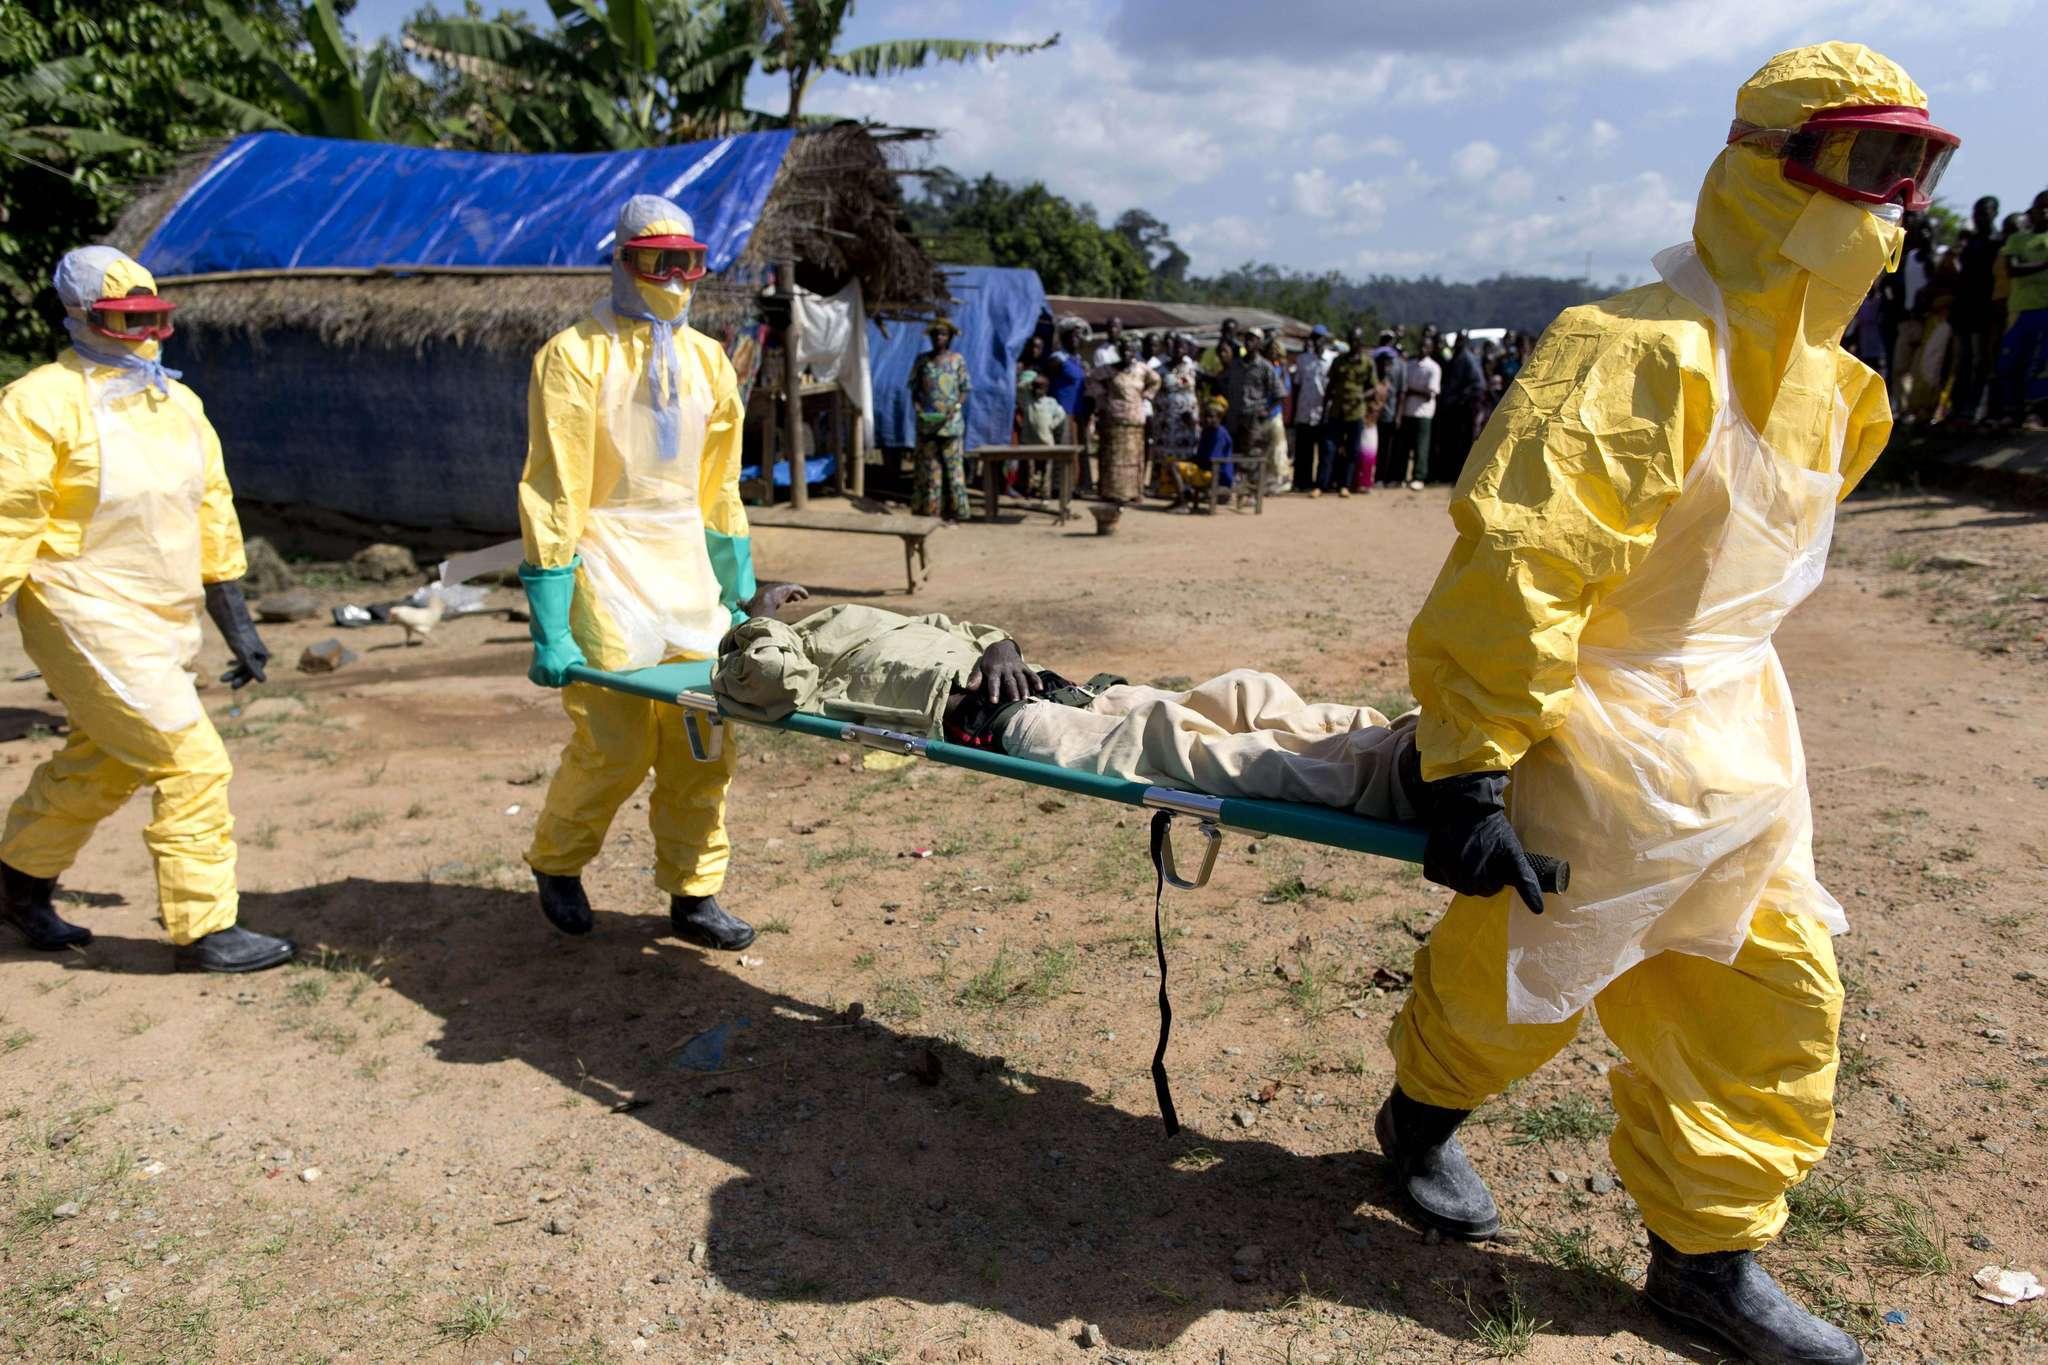 the outbreak of the ebola virus in west africa For the first time since december 2013, transmission of the ebola virus in west africa is said to have stopped, according to the world health organization it made the announcement as it declared today that liberia's outbreak has officially ended — the third time it has done so since the largest ebola.